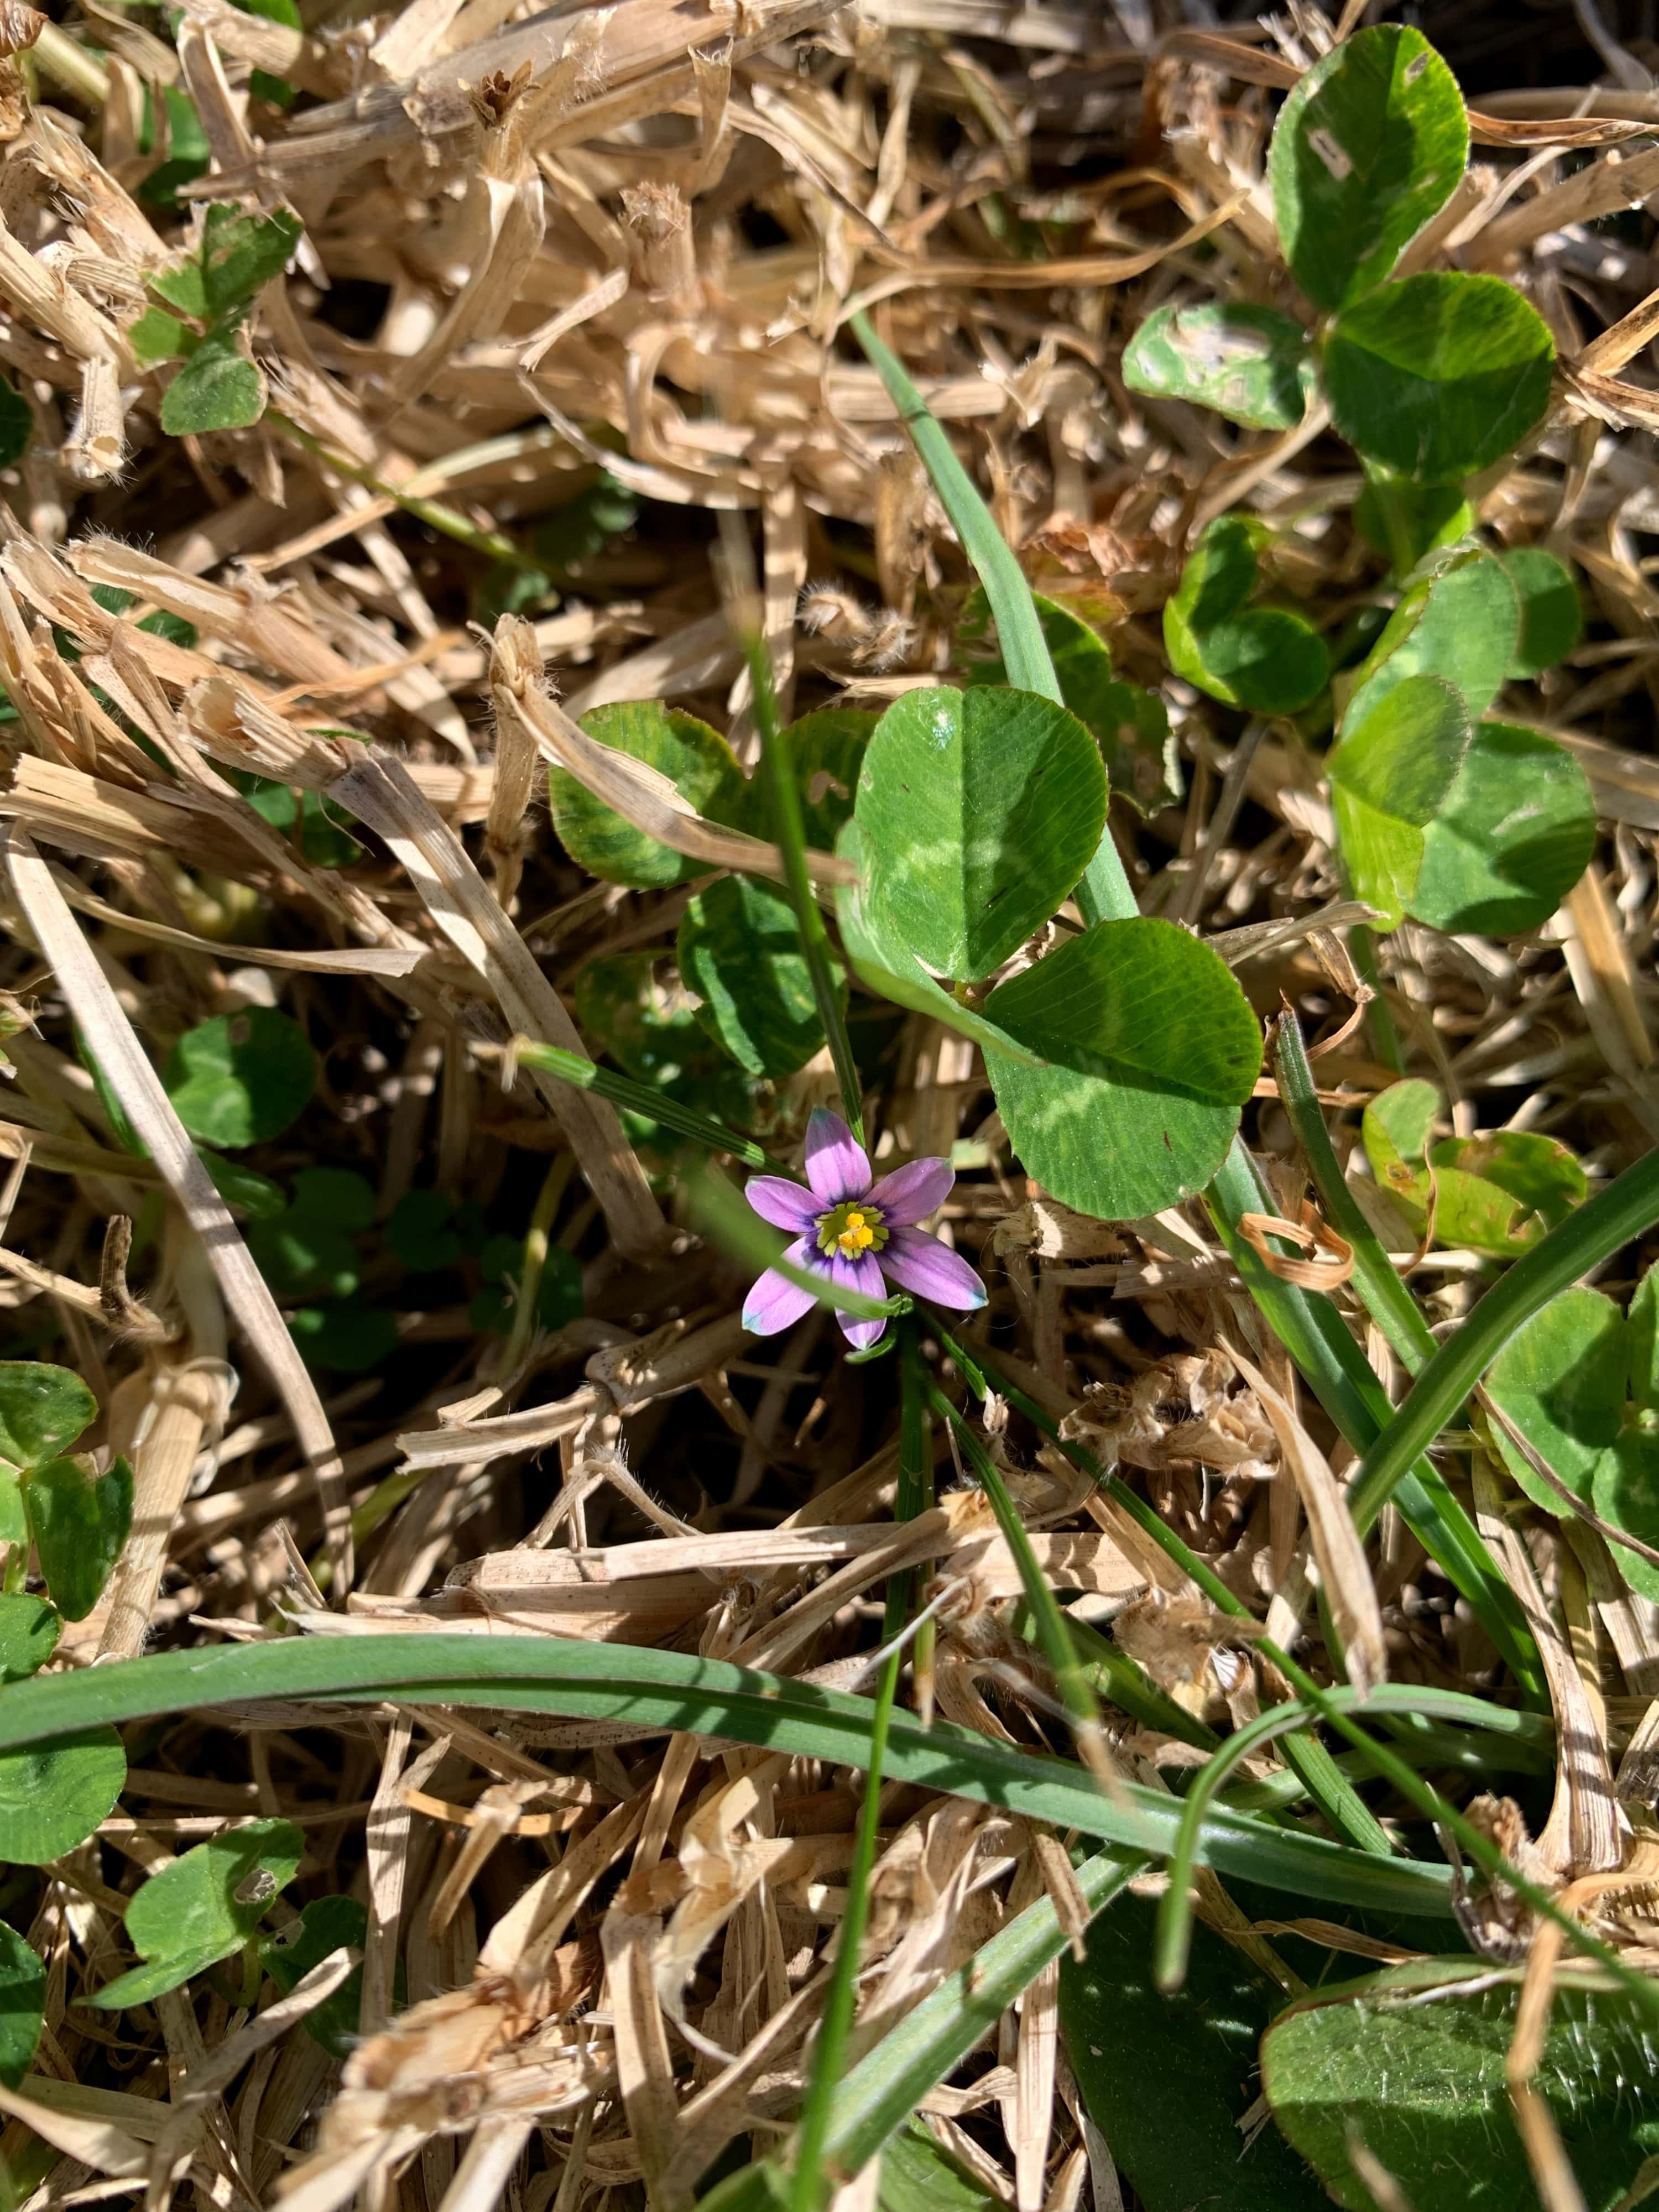 photo of a tiny flower in the ground, surrounded by dry and fresh grass